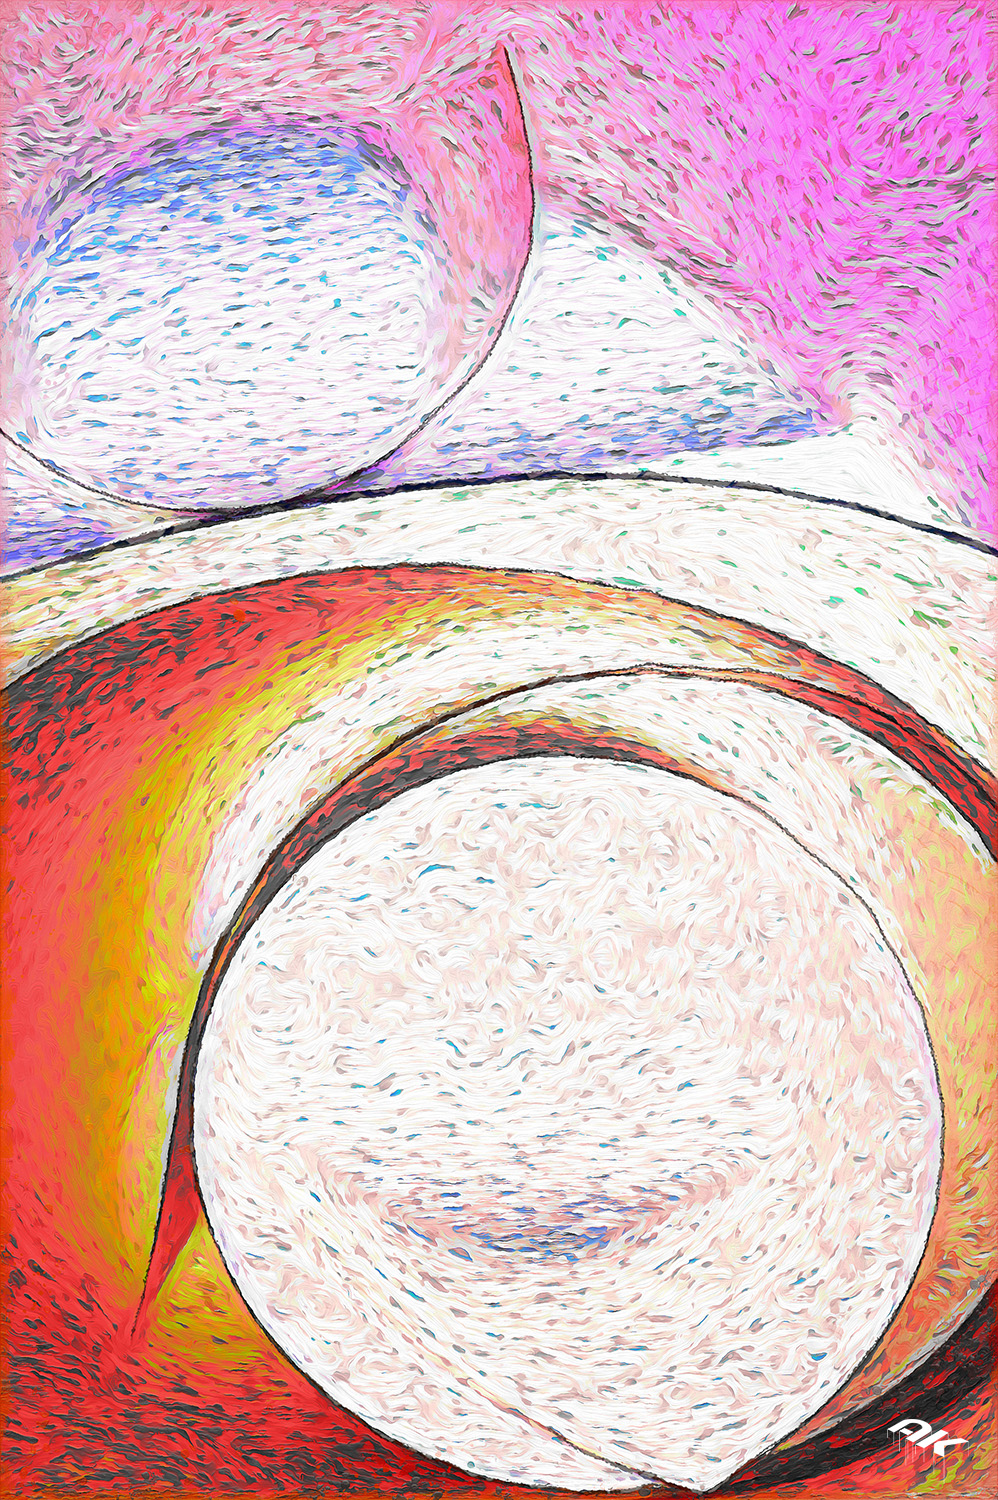 Colored rounded plate closeup. Background vertical photo.